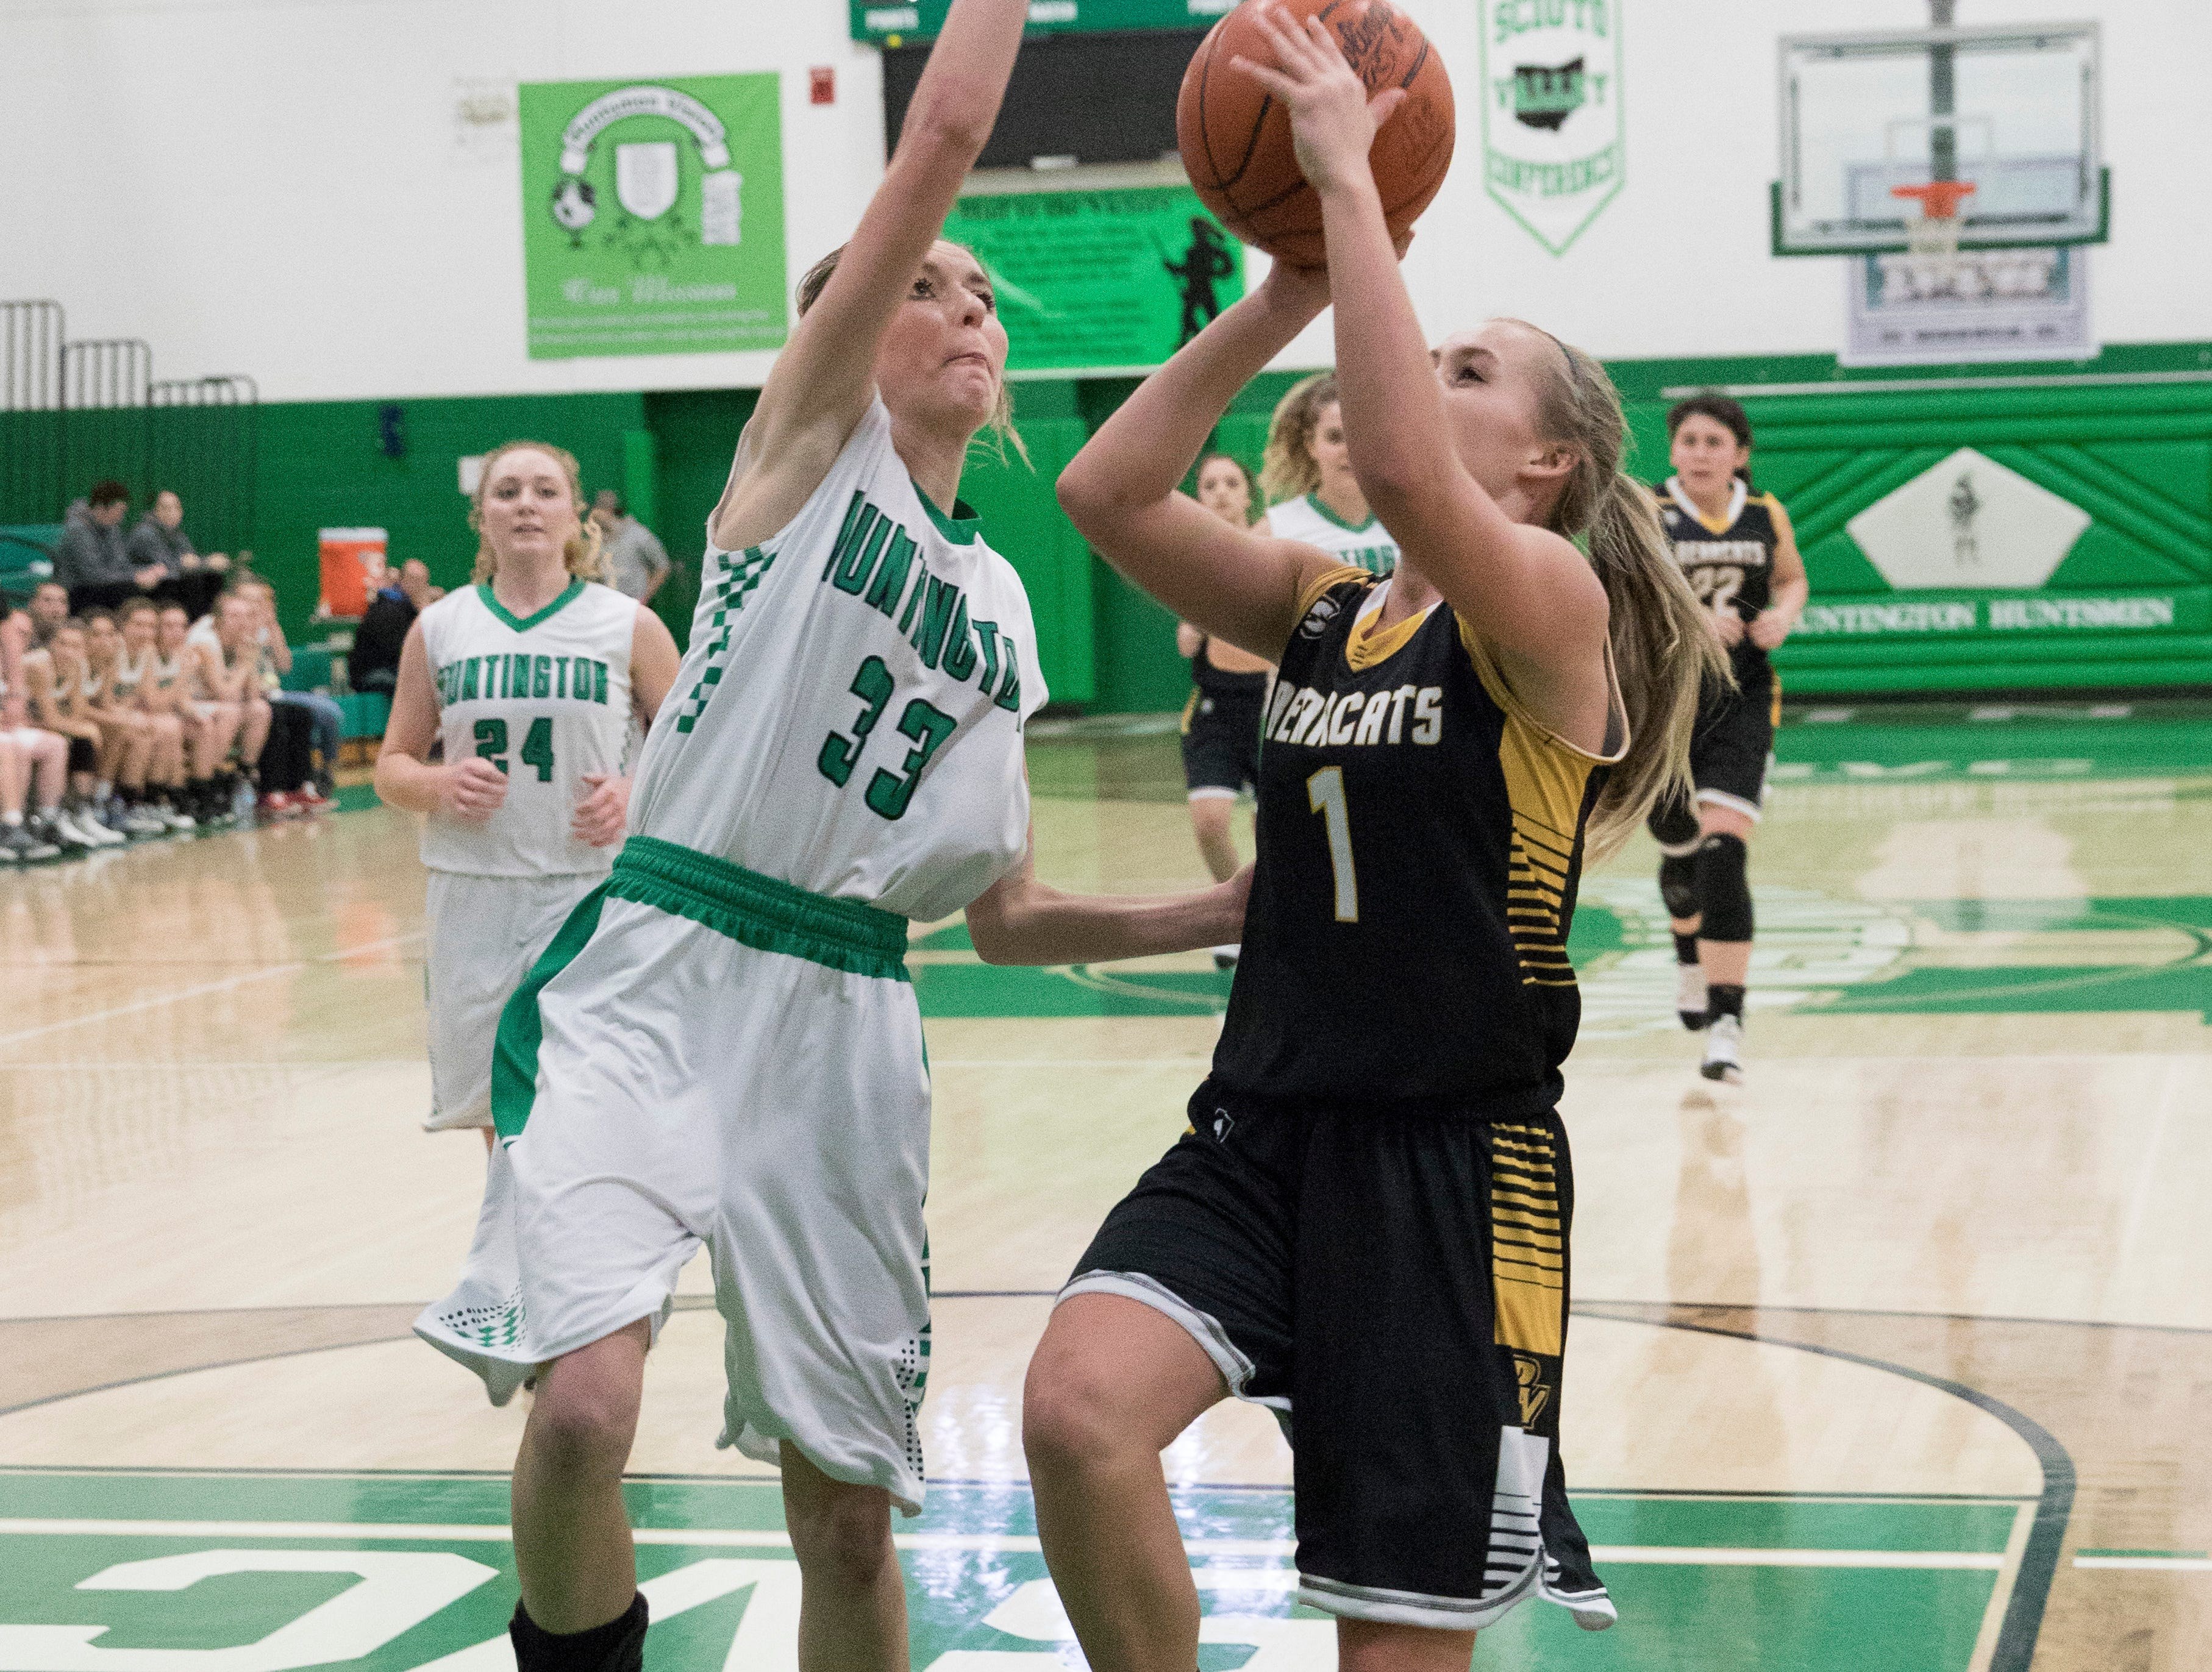 Huntington defeated Paint Valley Tuesday night 68-51 at Huntington High School, giving Huntington second standing in the SVC.